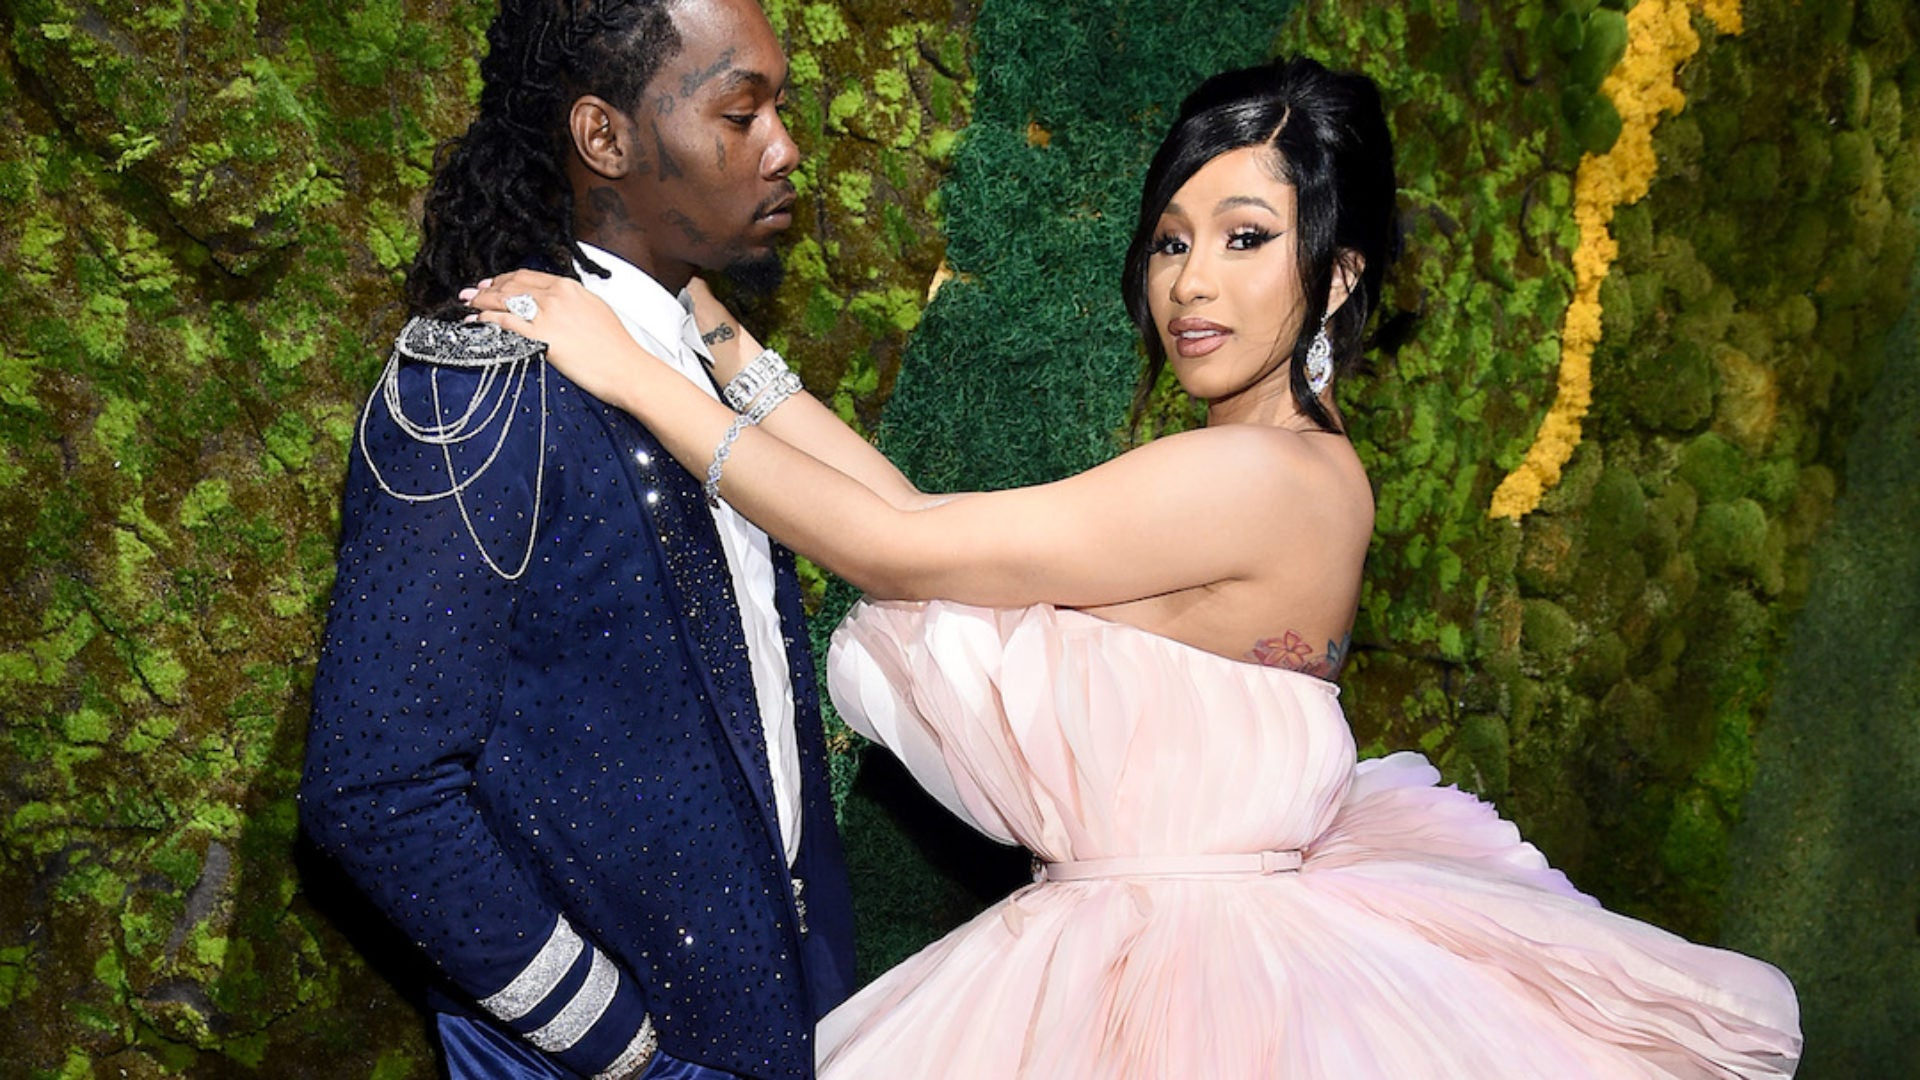 Cardi B Says She Once Stopped Her Period To Have Sex With Offset